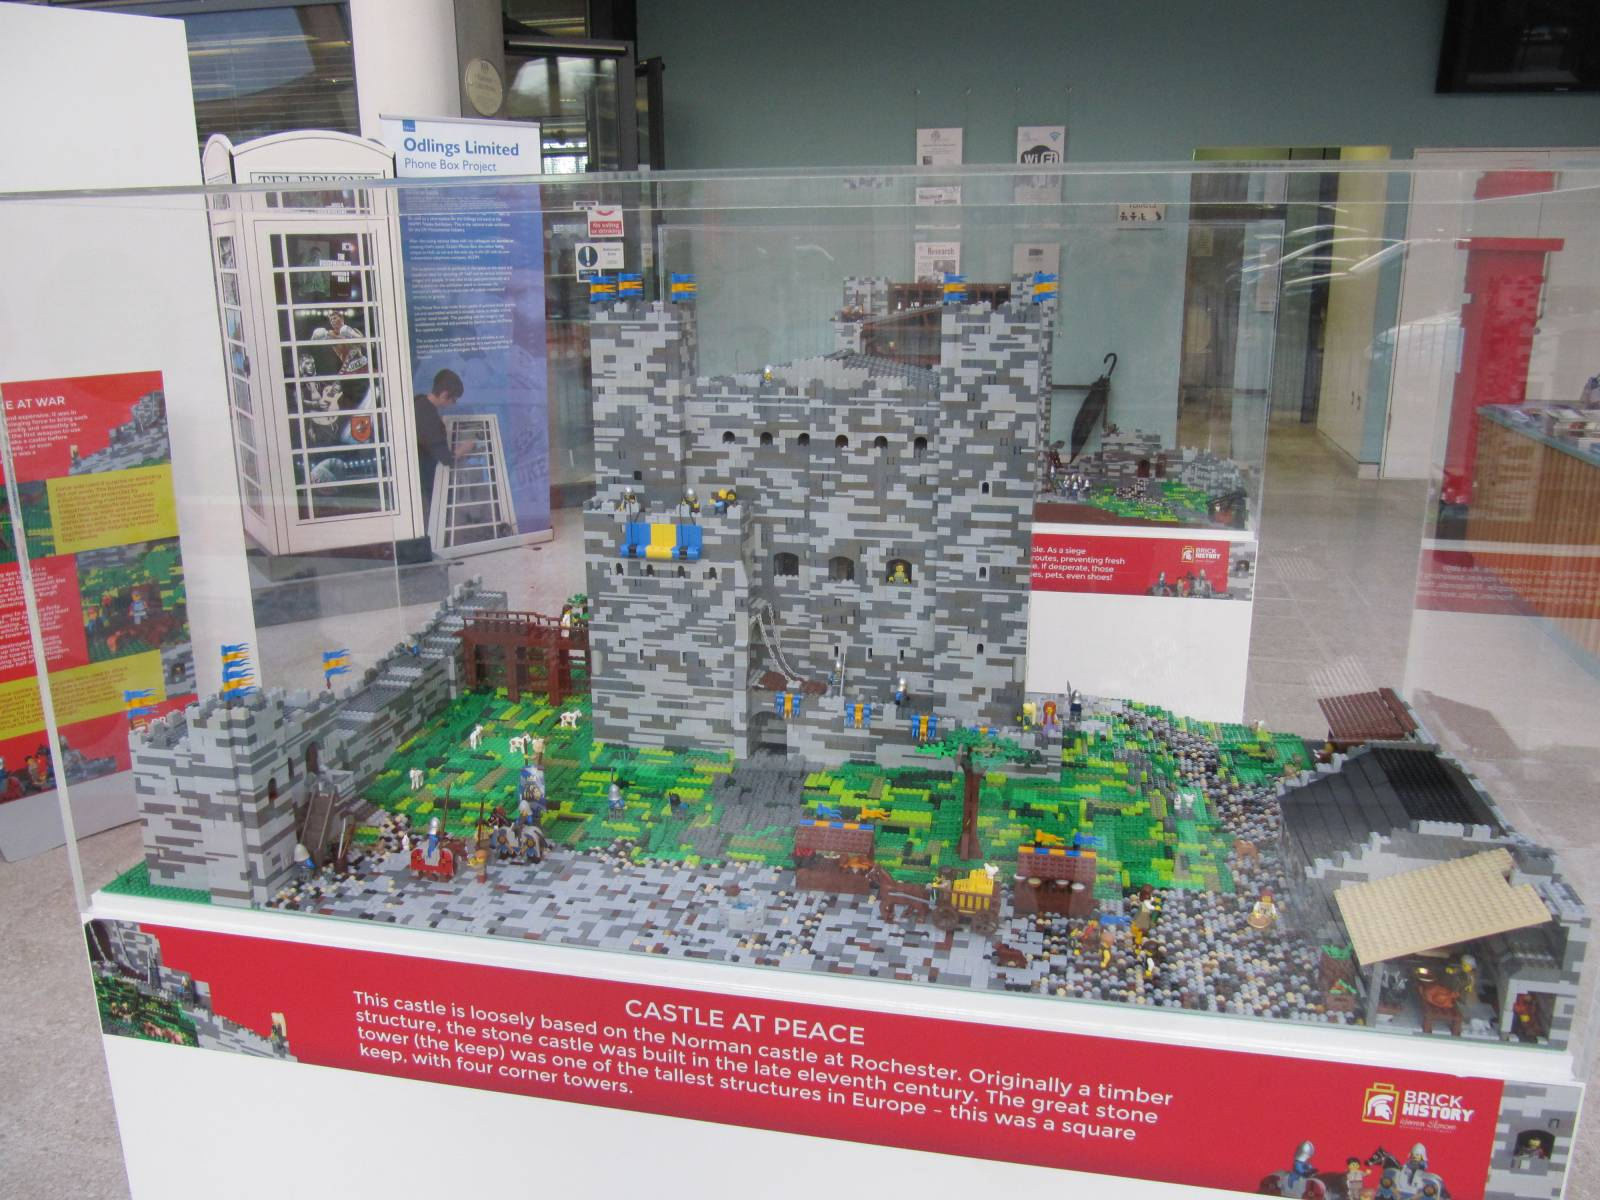 Brick History, an exhibition of major historical milestones made entirely from Lego, is on display at the Hull History Centre until Saturday 9 March.